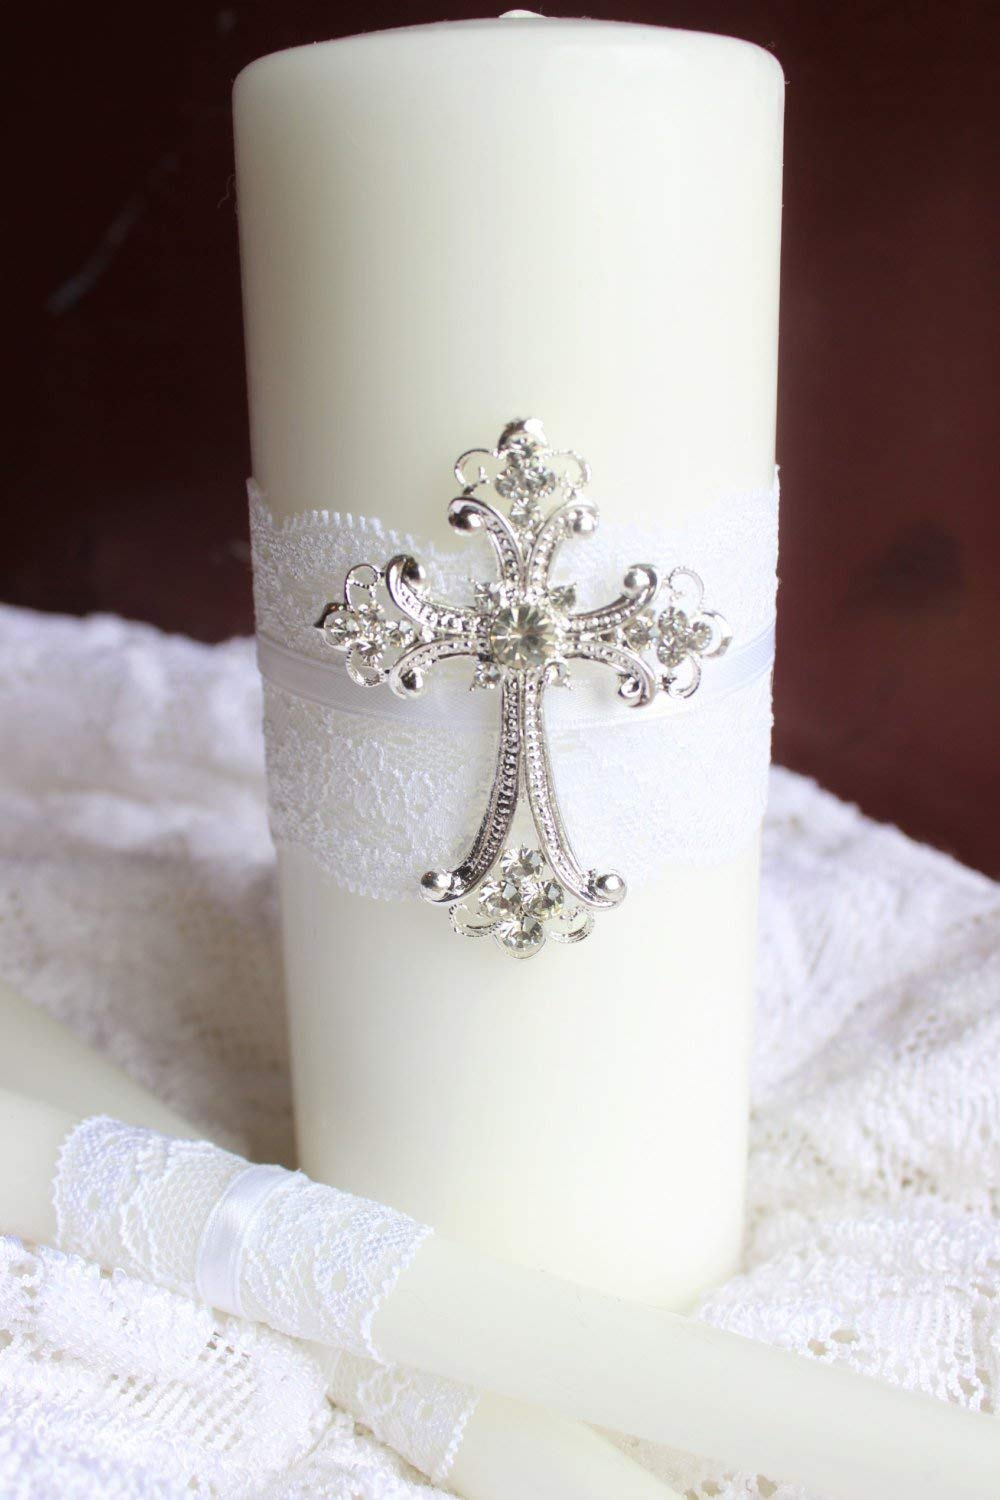 Silver Cross Wedding Unity Candles - White OR Ivory Candle Set for Church Wedding by Brilliant Bride